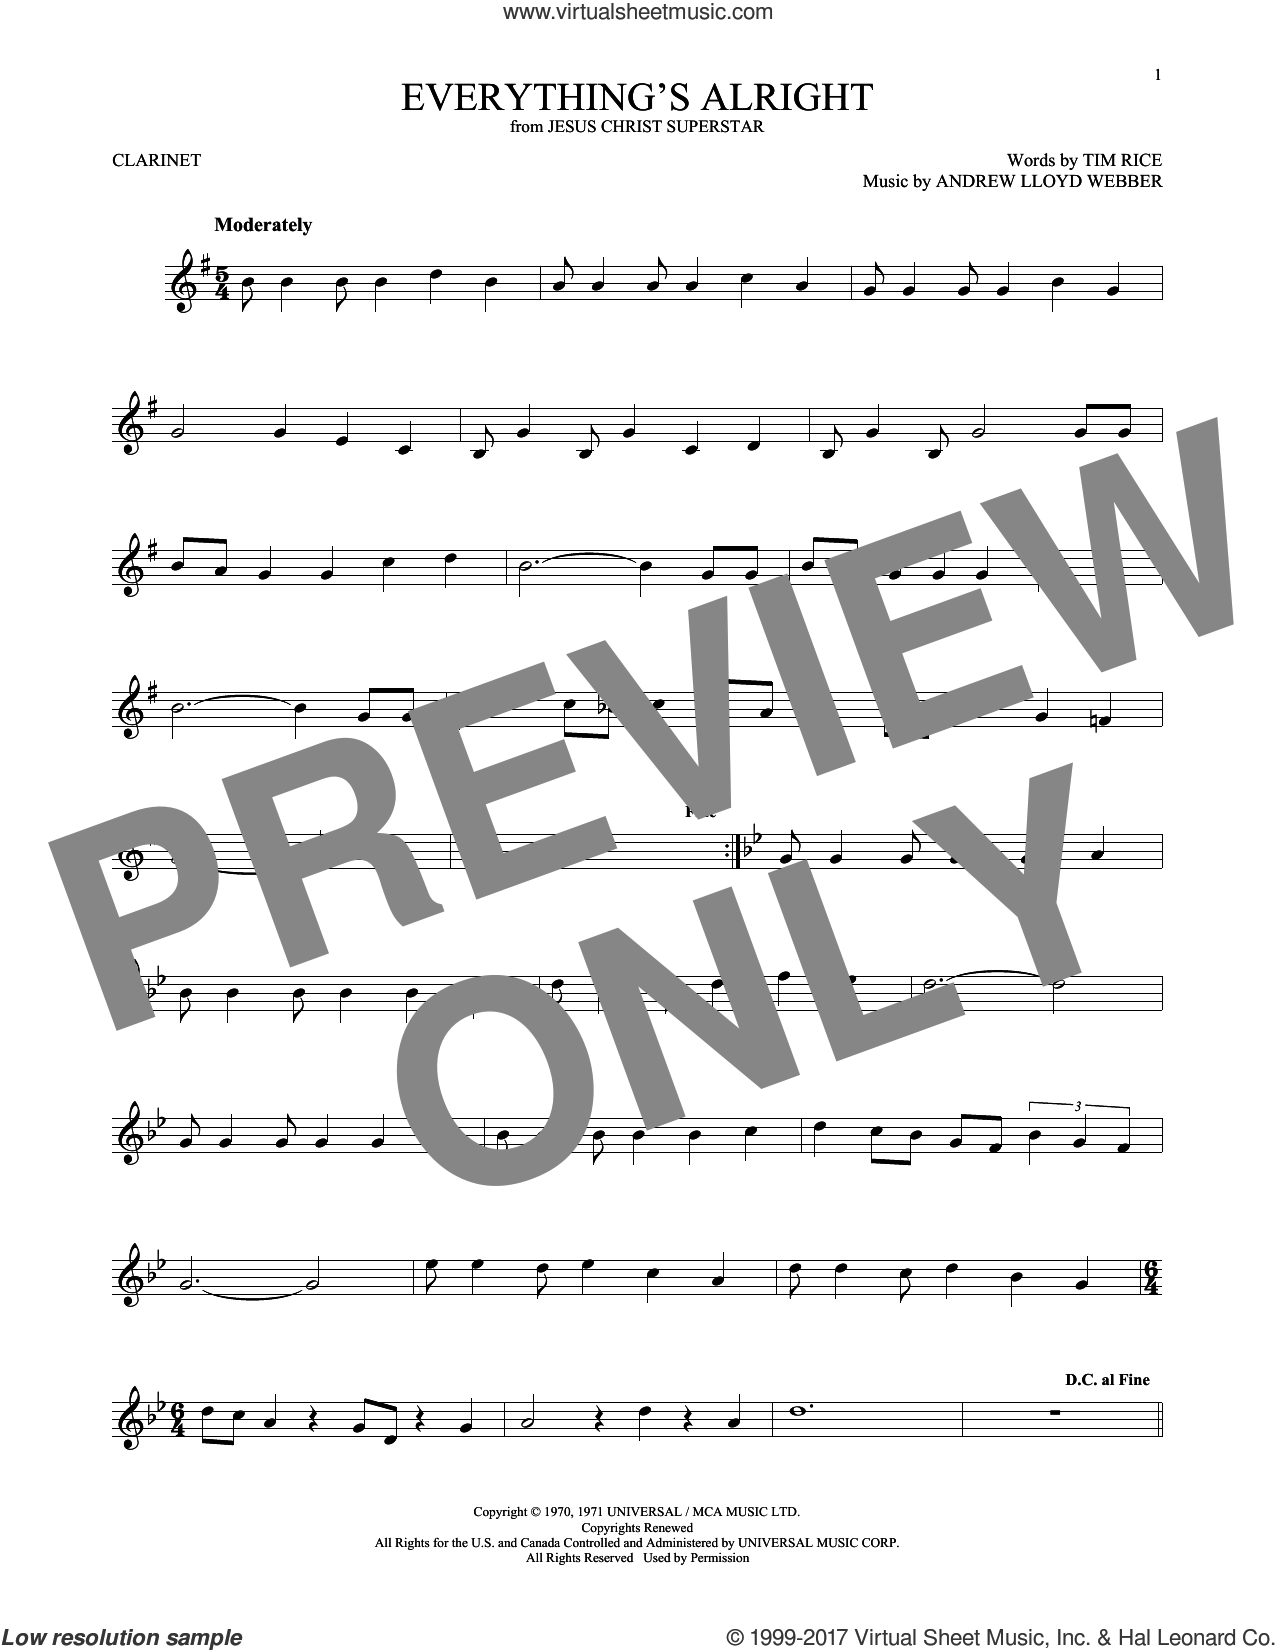 Everything's Alright sheet music for clarinet solo by Andrew Lloyd Webber, Yvonne Elliman and Tim Rice, intermediate skill level